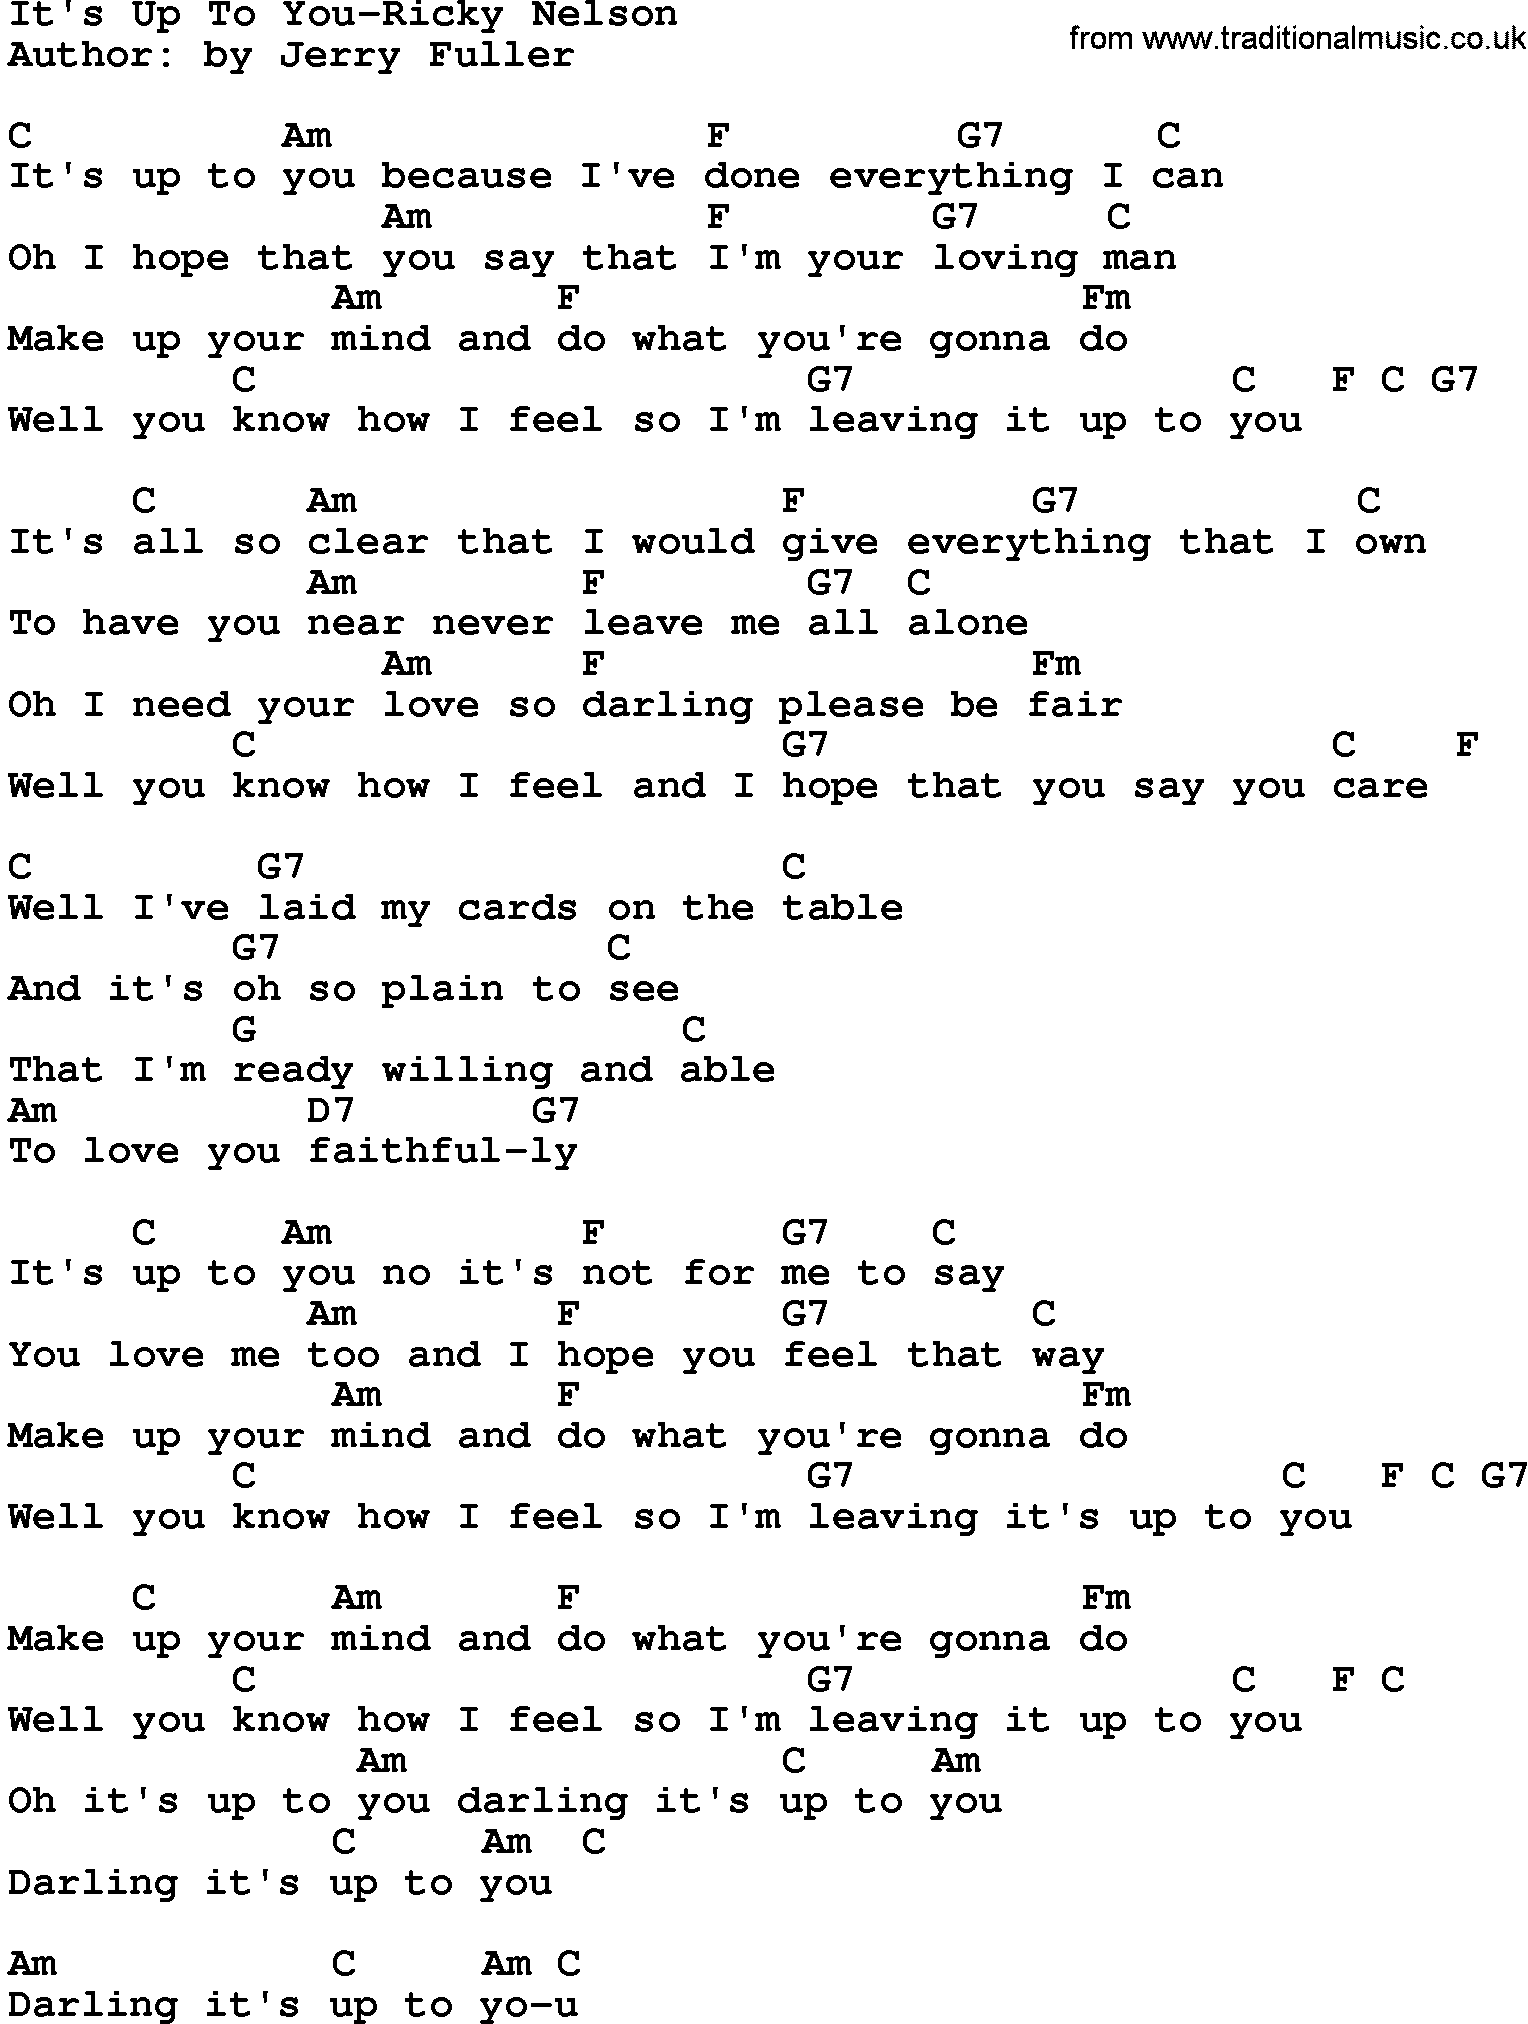 Country musicits up to you ricky nelson lyrics and chords hexwebz Image collections